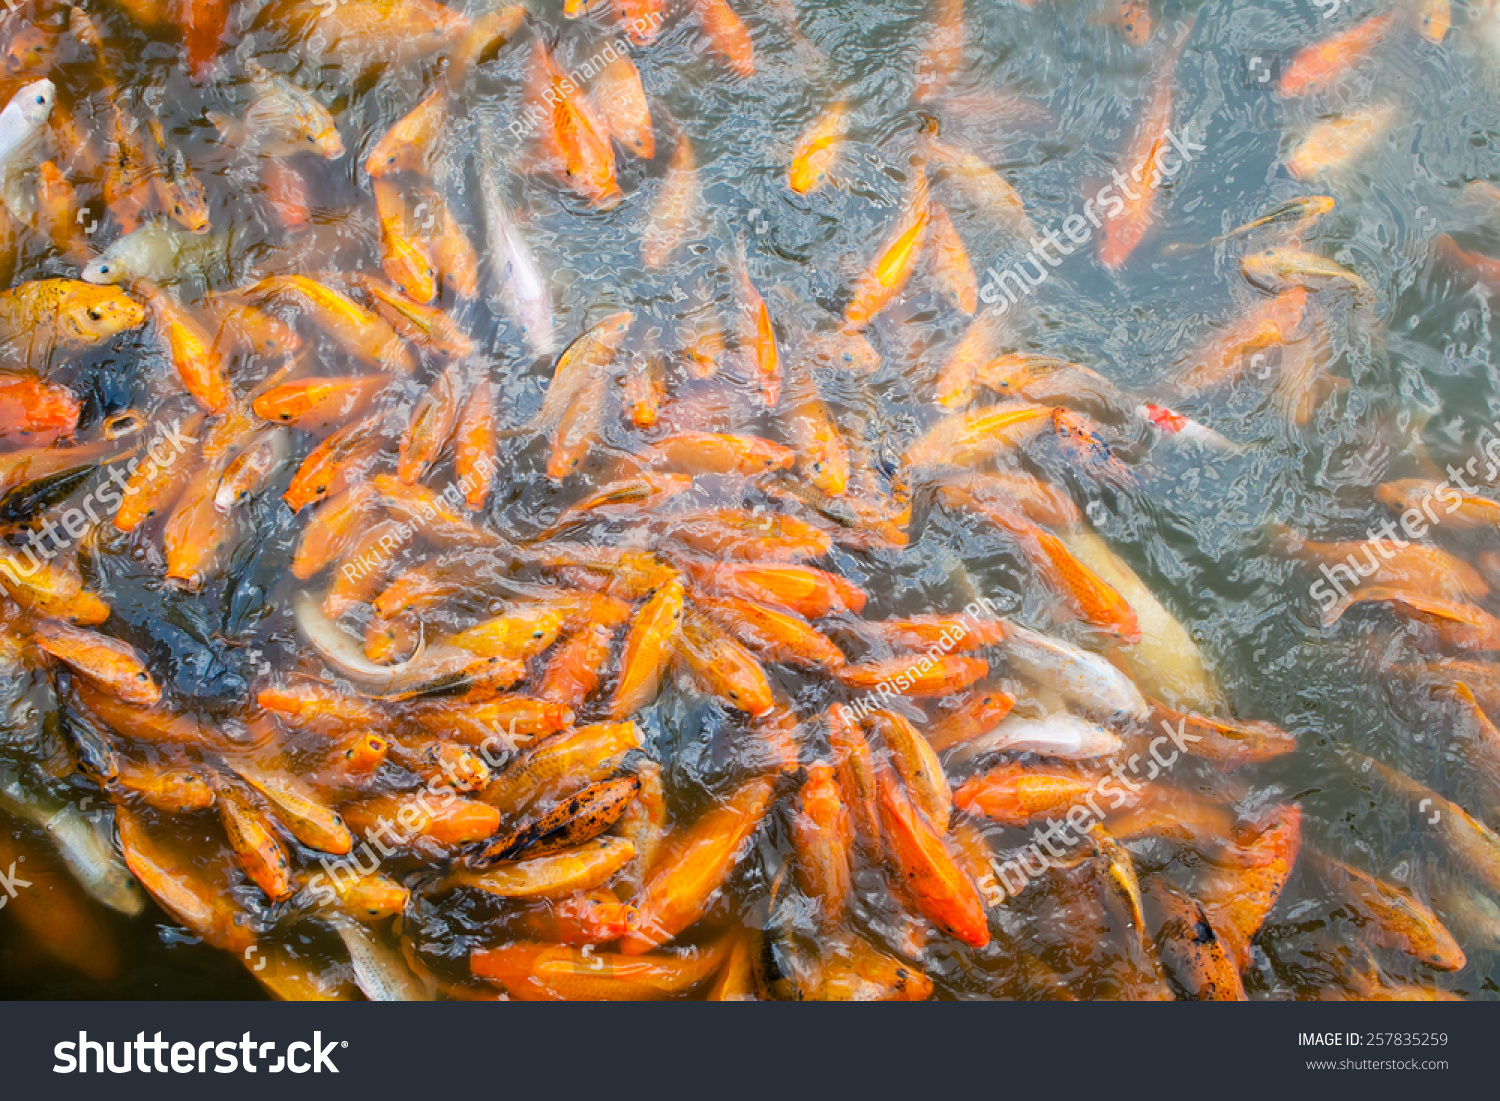 Lots Of Golden Fish On The Pond Stock Photo 257835259 Shutterstock